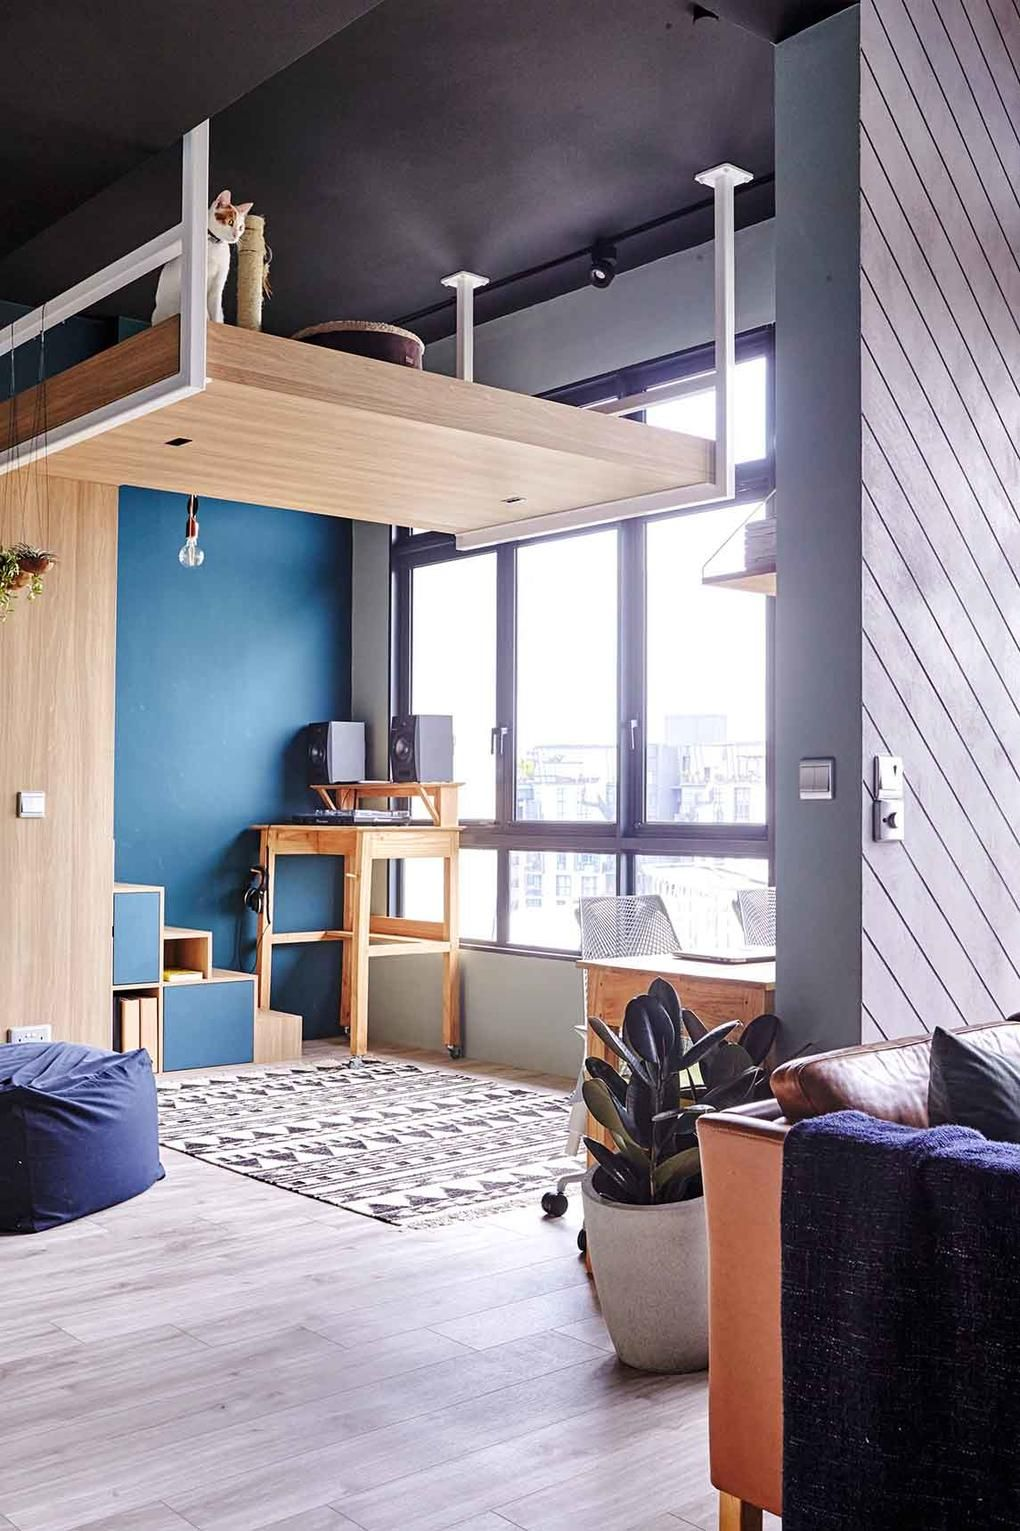 House Tour A Minimalist Nordic Style Two Bedroom Condo Apartment